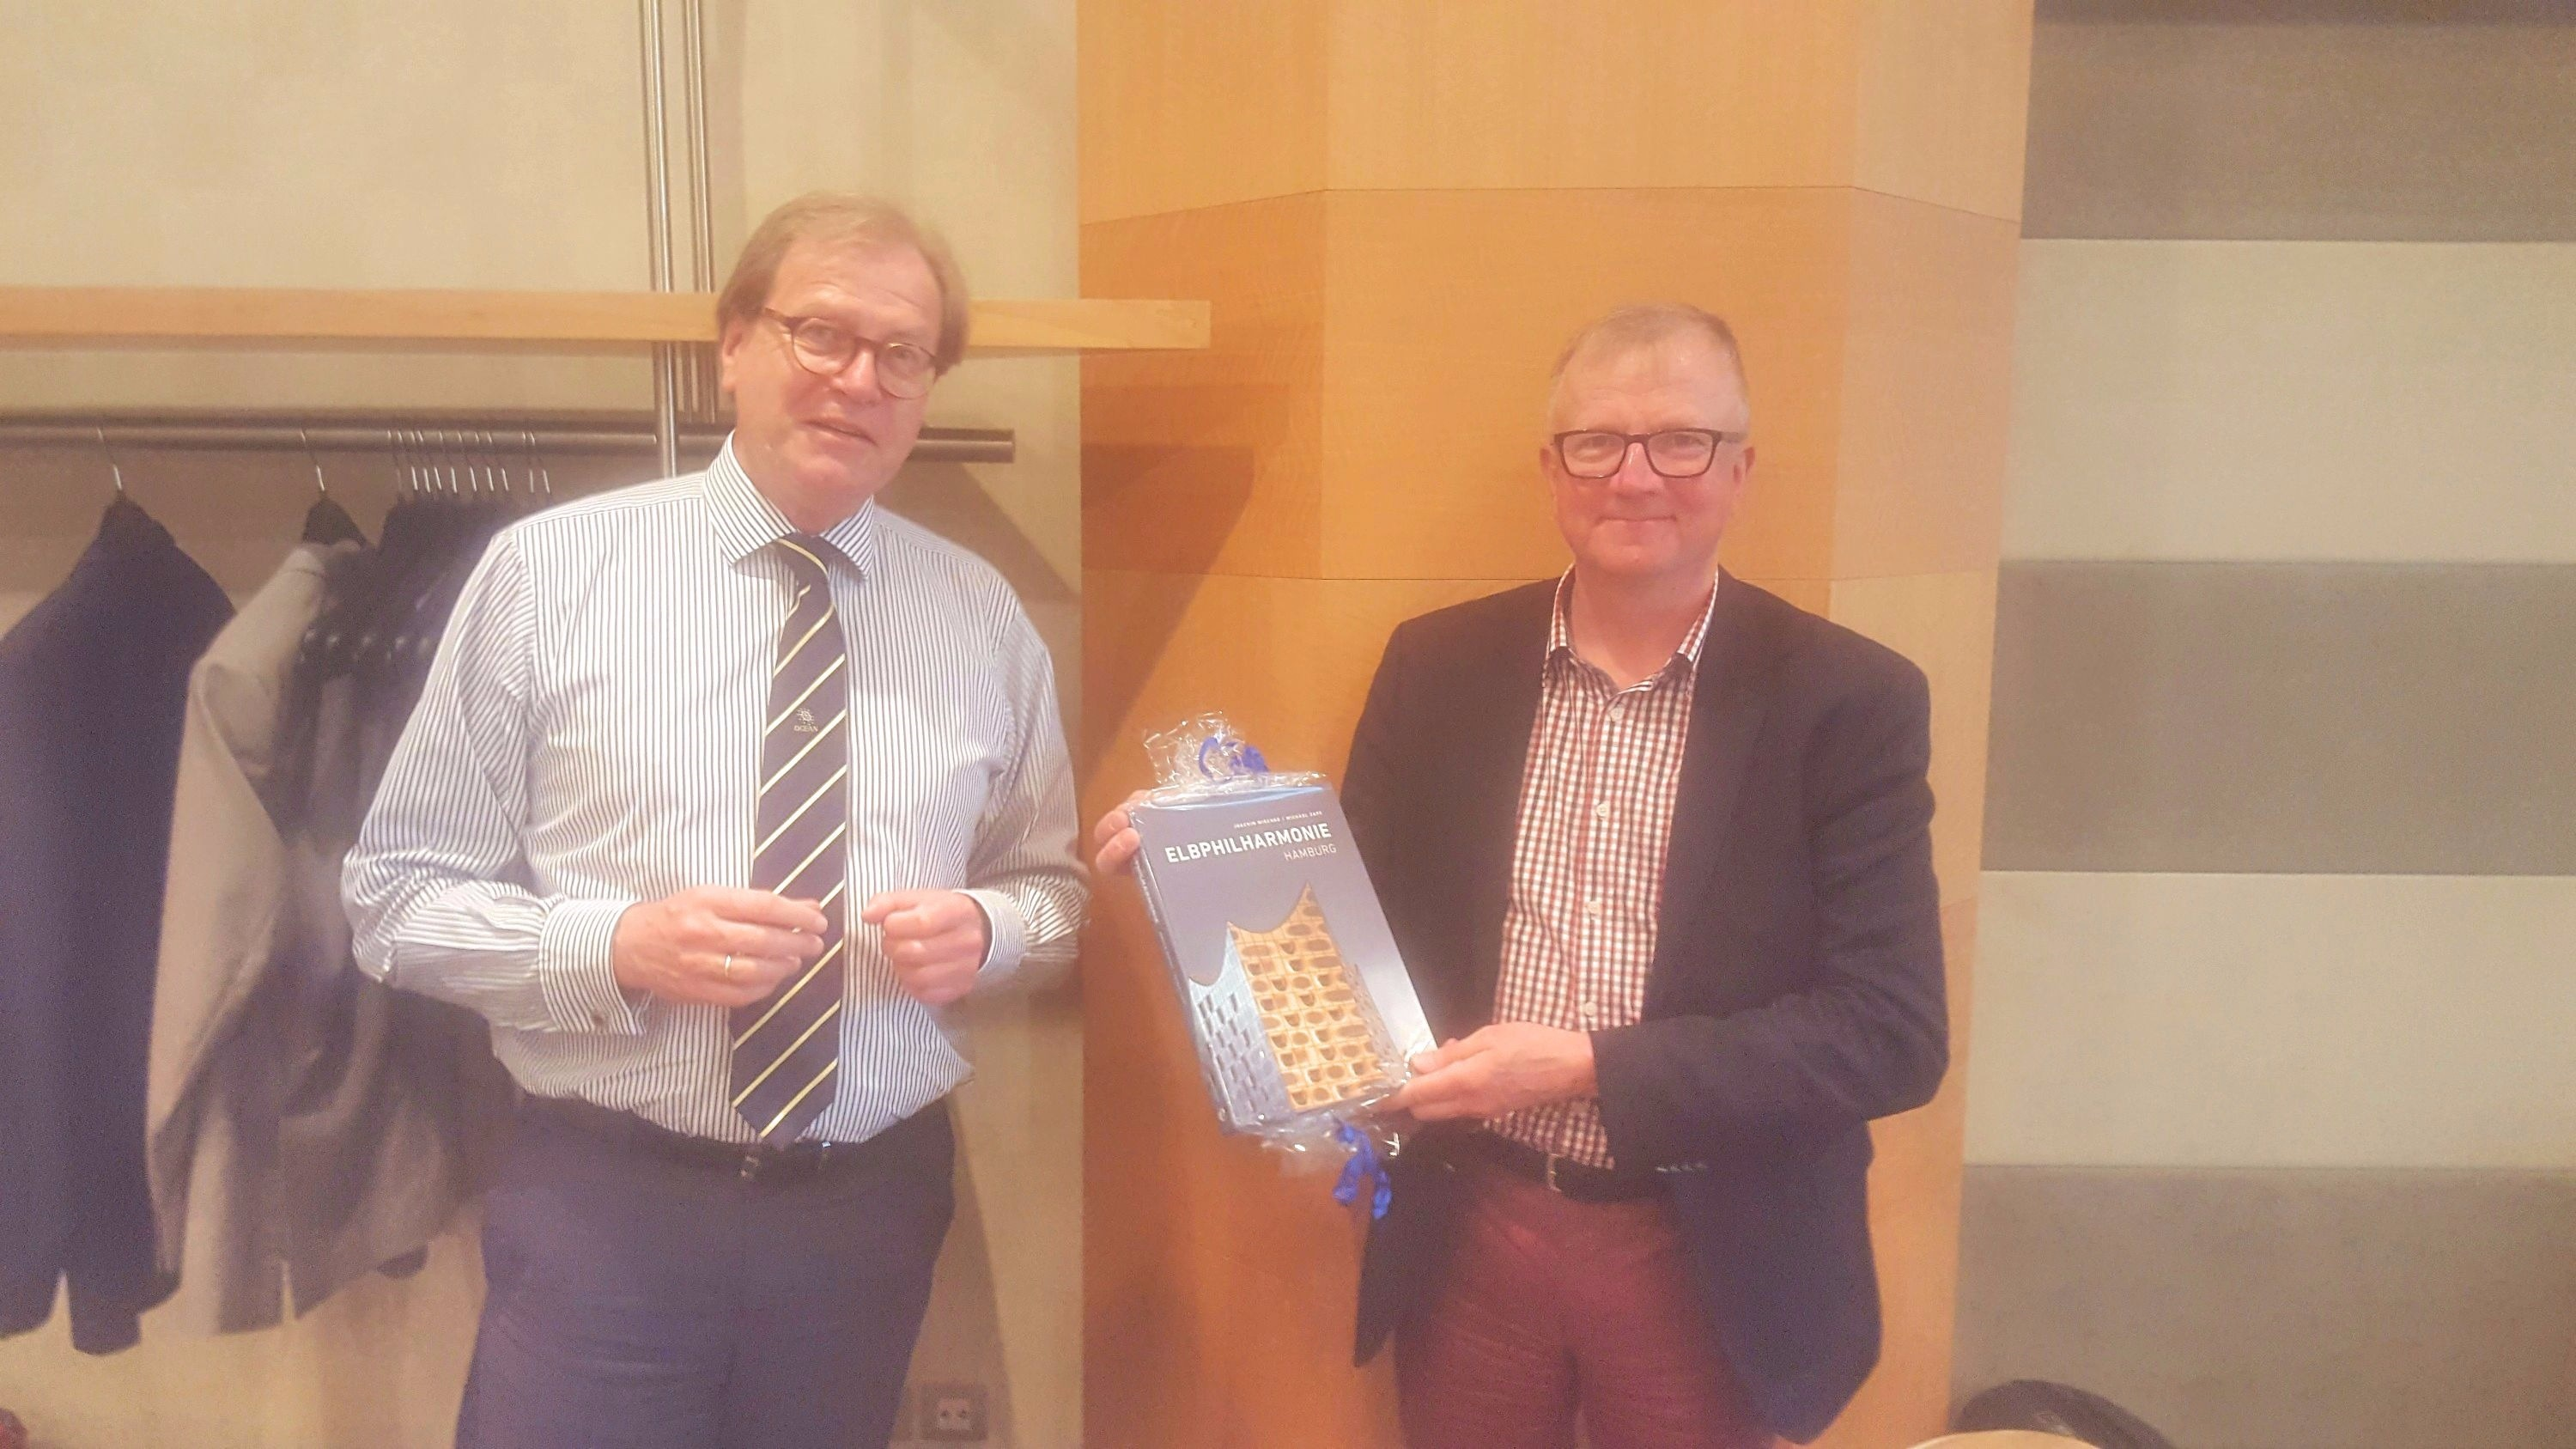 Wolfgang Sump (left) presents the souvenir book to Matti Kokkala to mark his many years of distinguished service to OCEAN and to wish him a long and happy retirement.